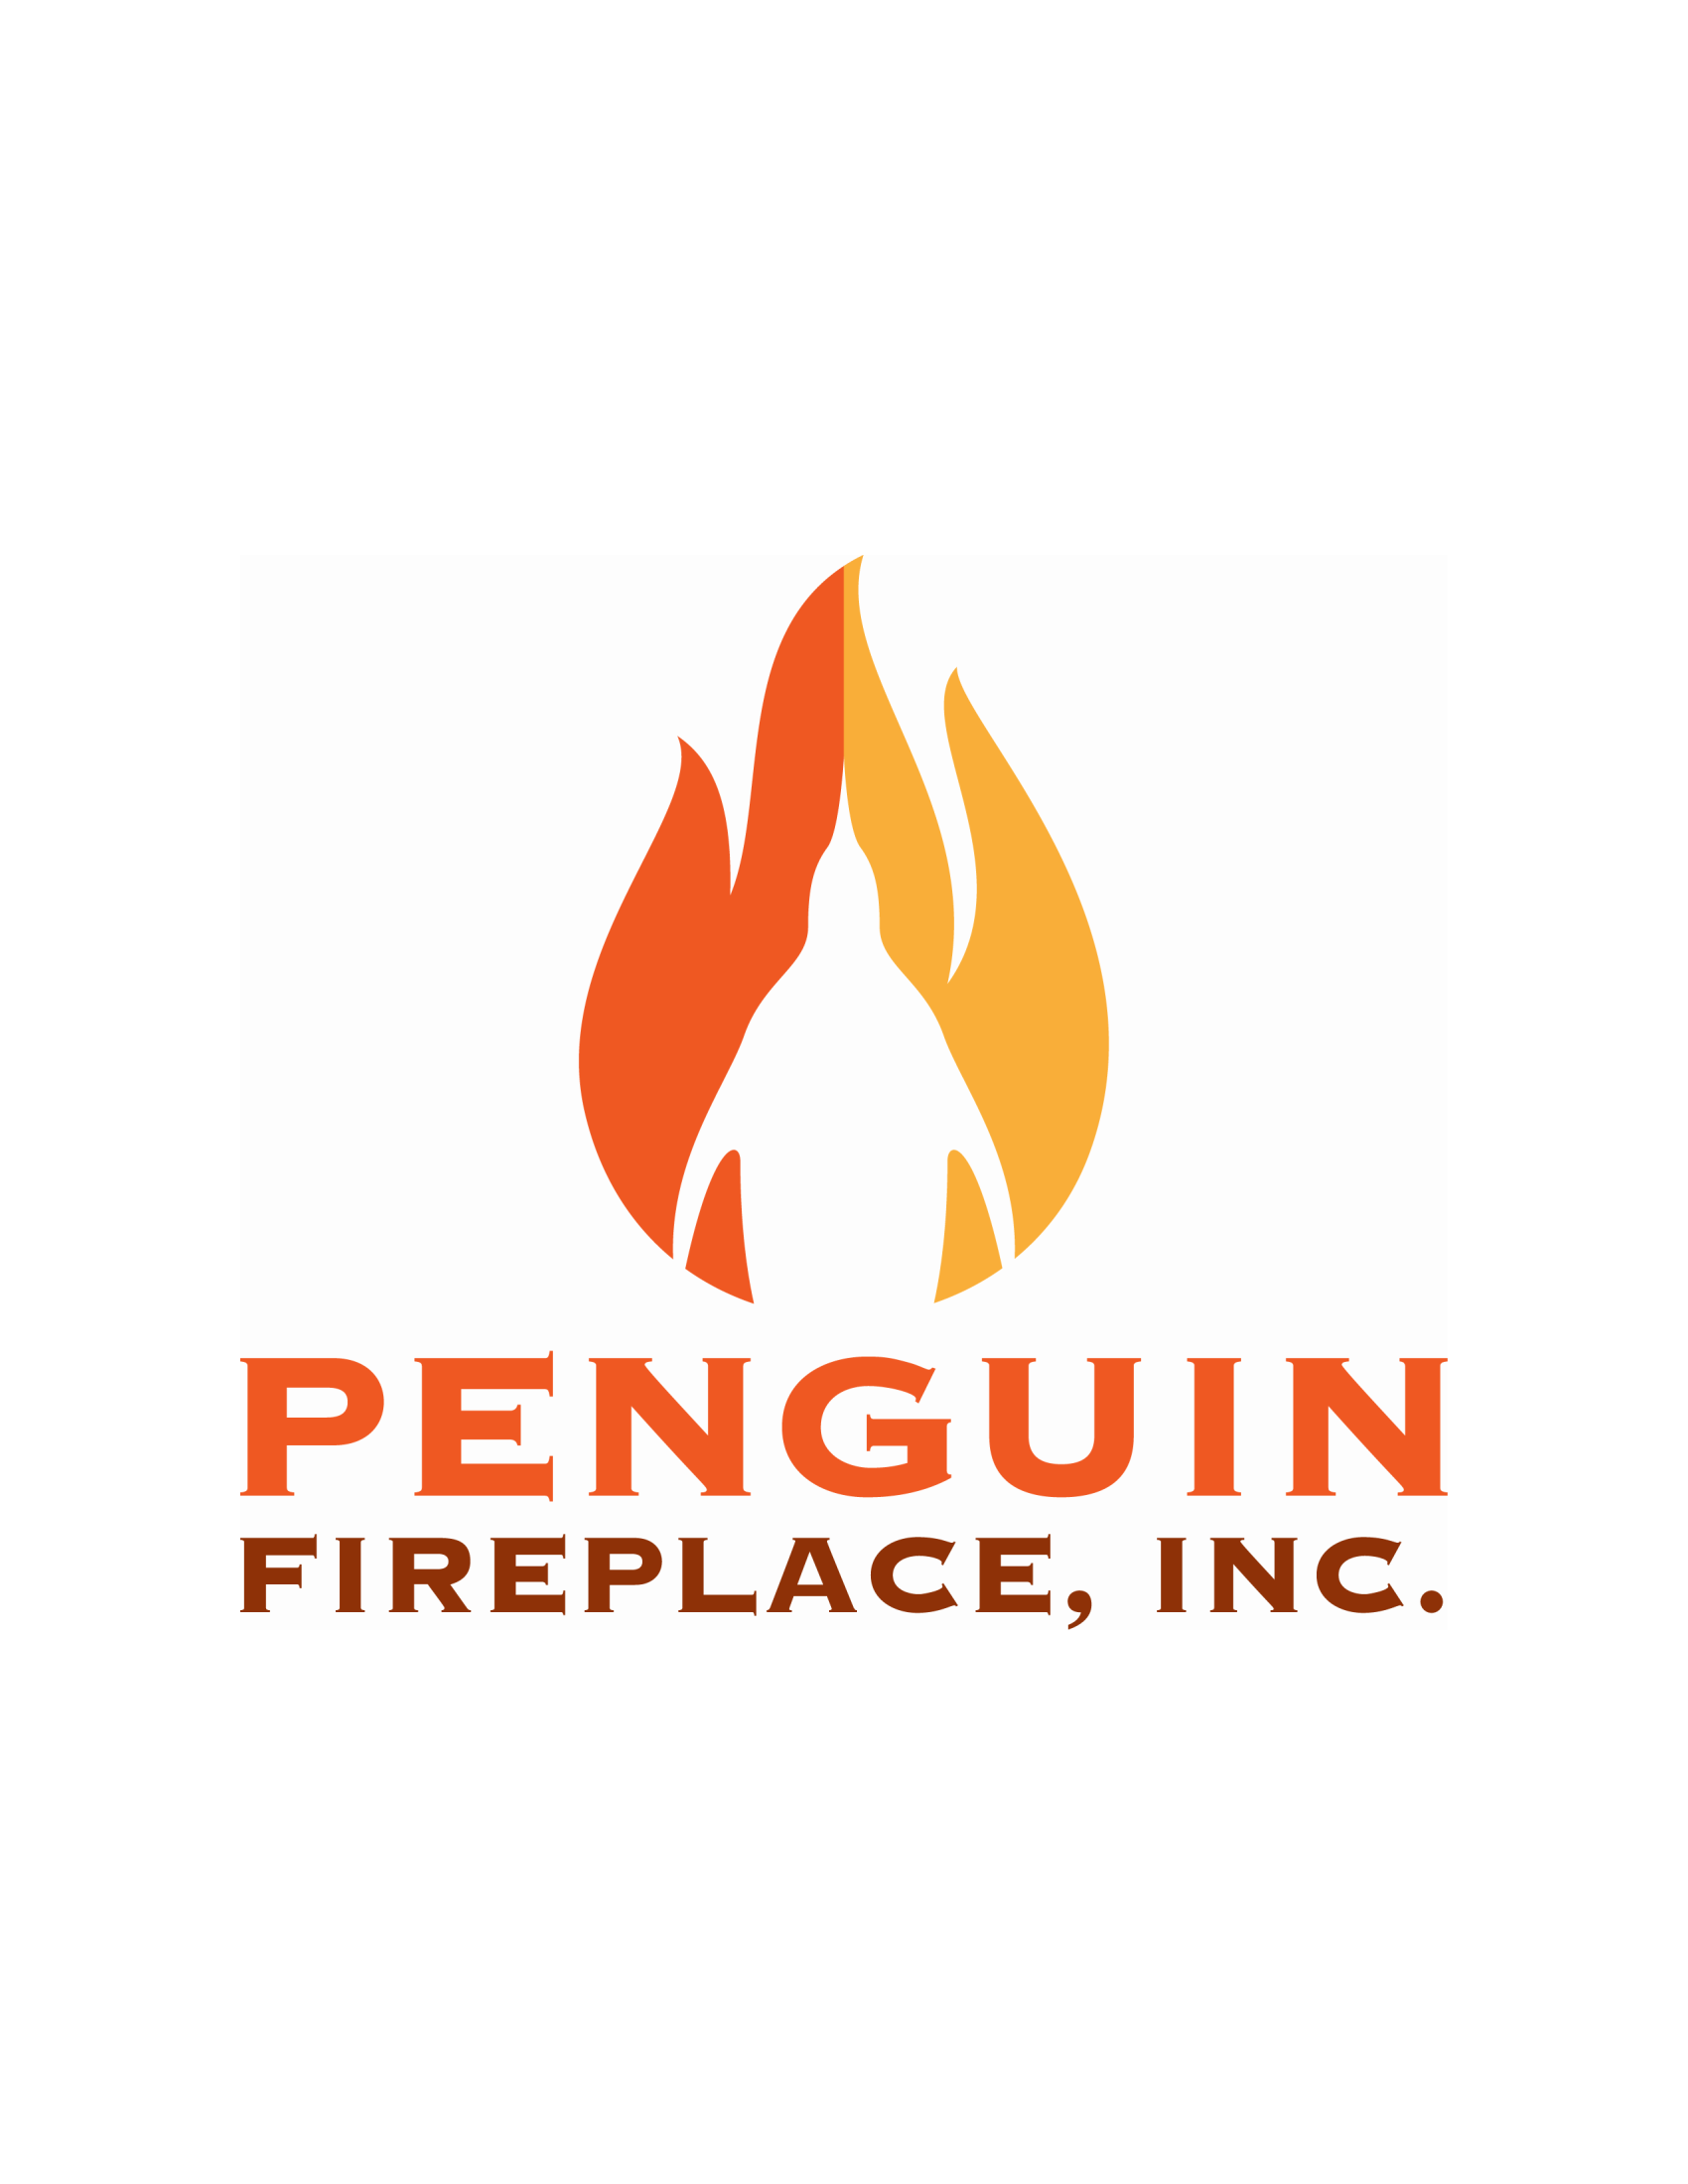 Penguin Fireplace